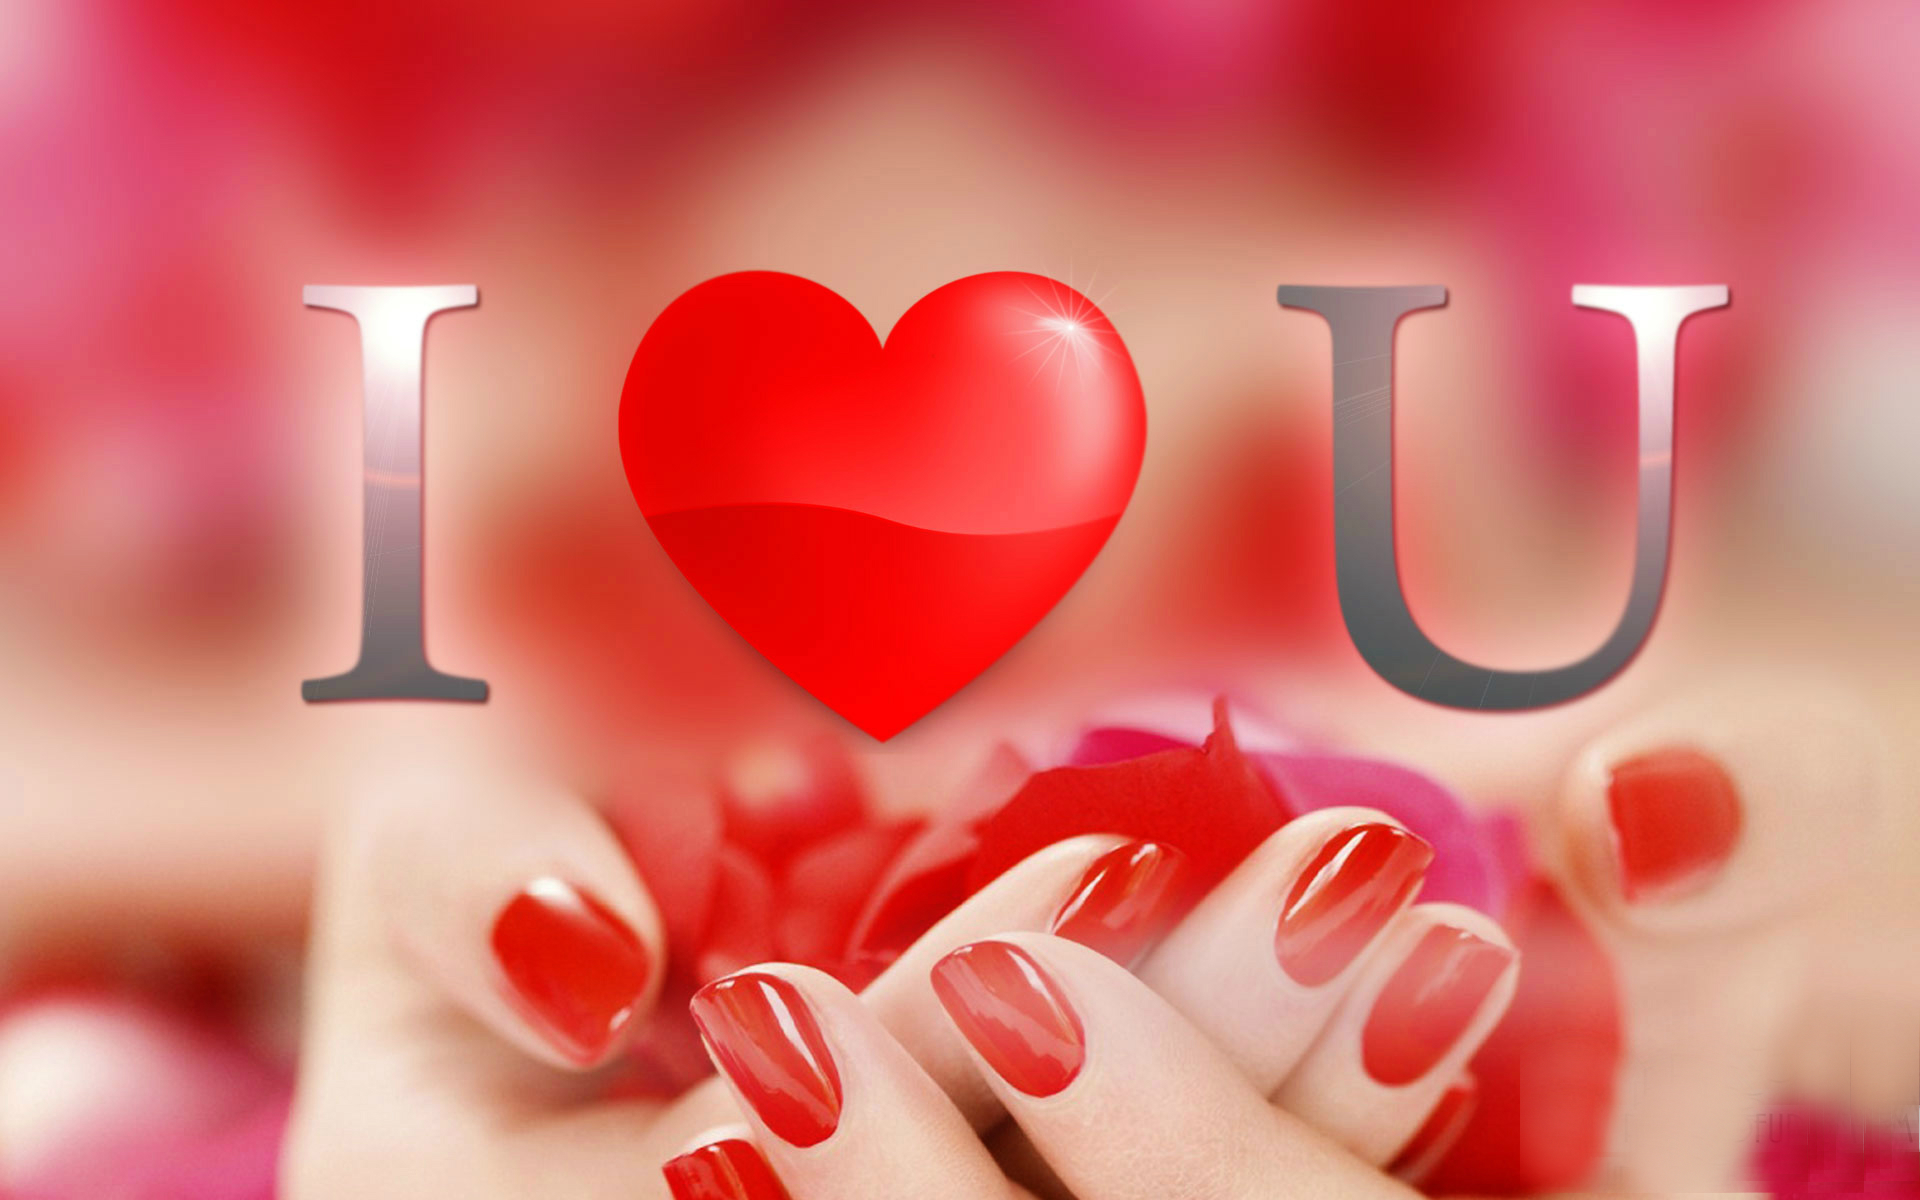 Free Download Beautiful Love Hd Wallpapers At Wallbeam Lovely Couple